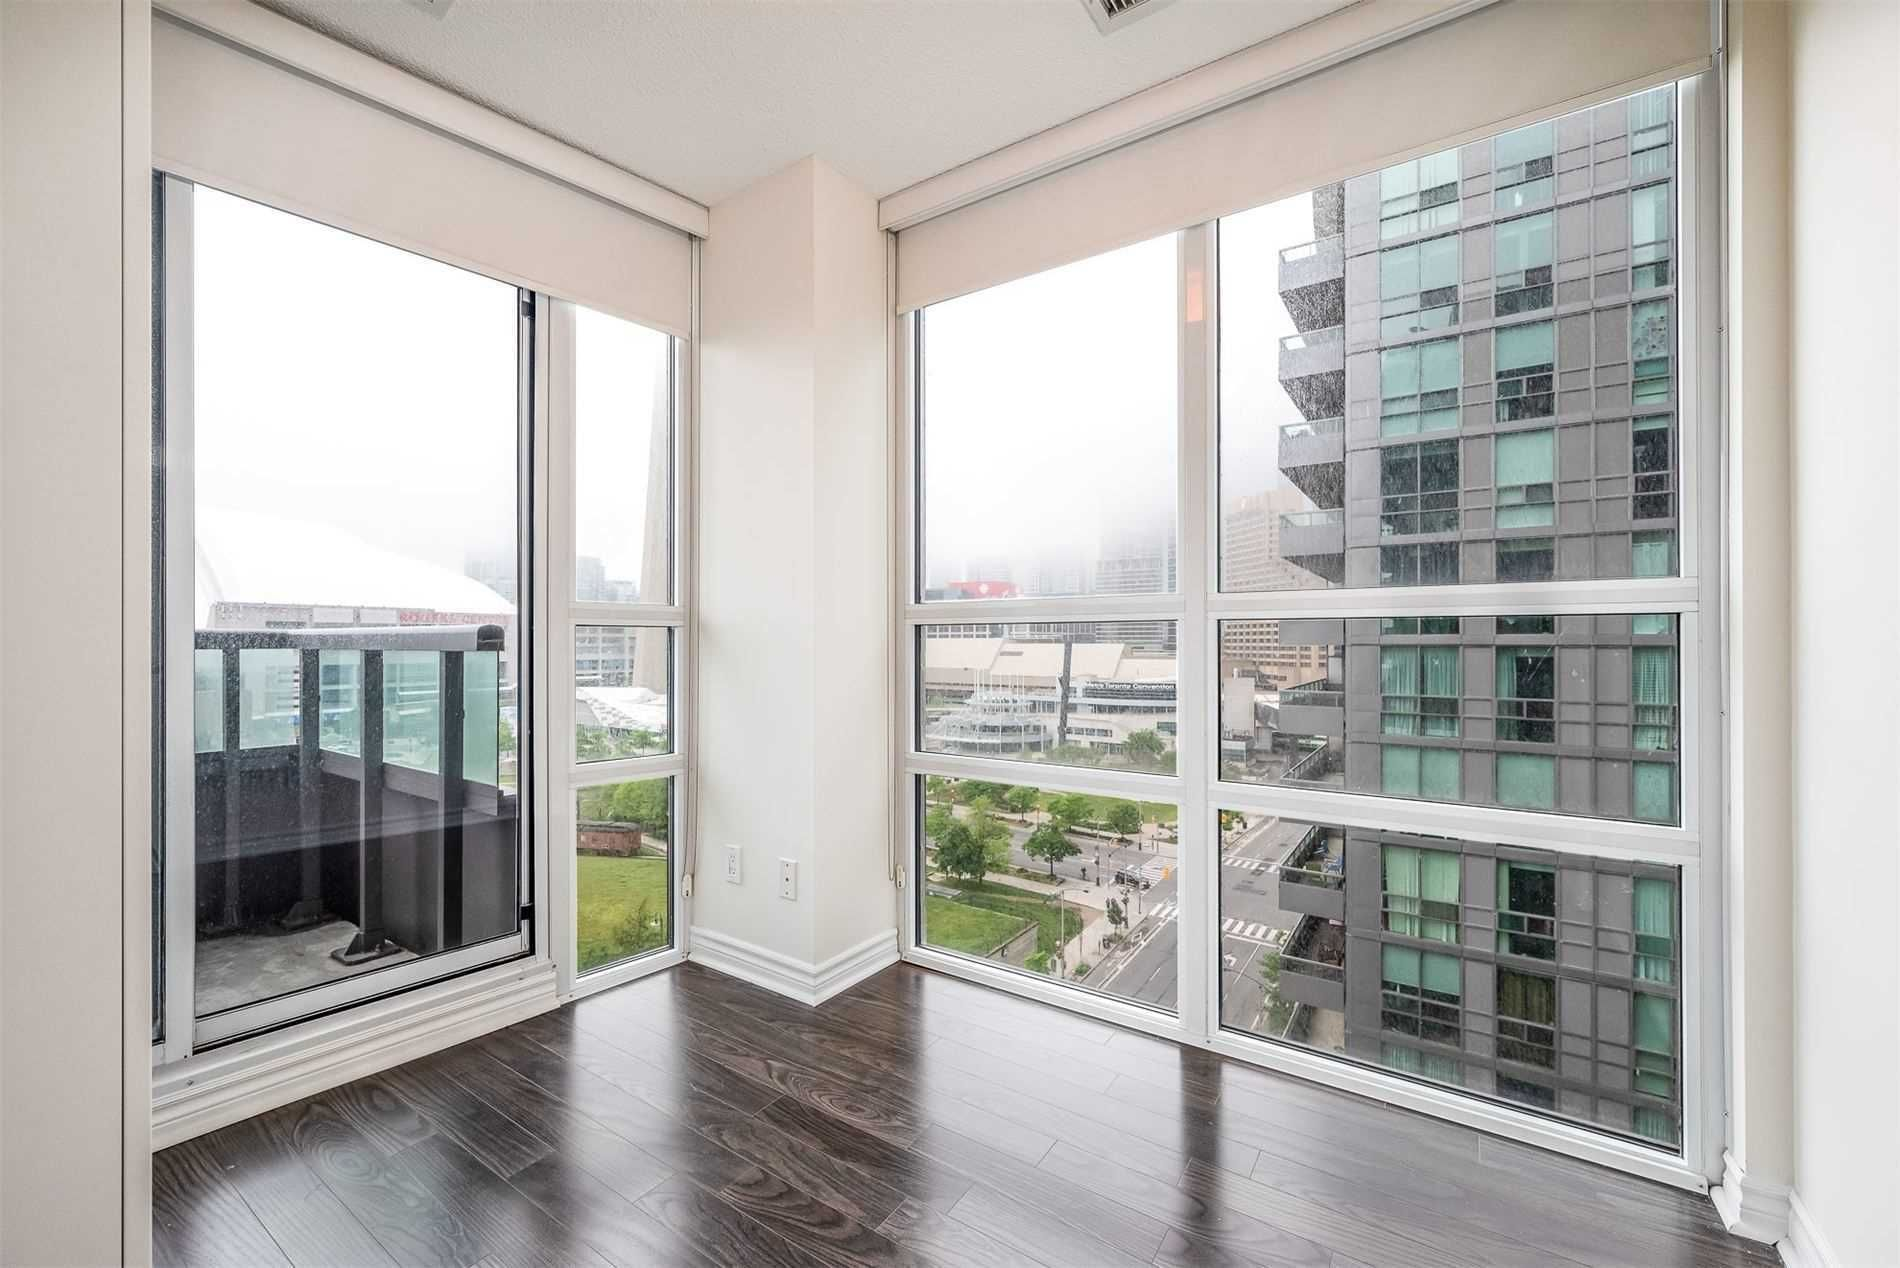 25 Lower Simcoe St, unit 1518 for rent in Toronto - image #1